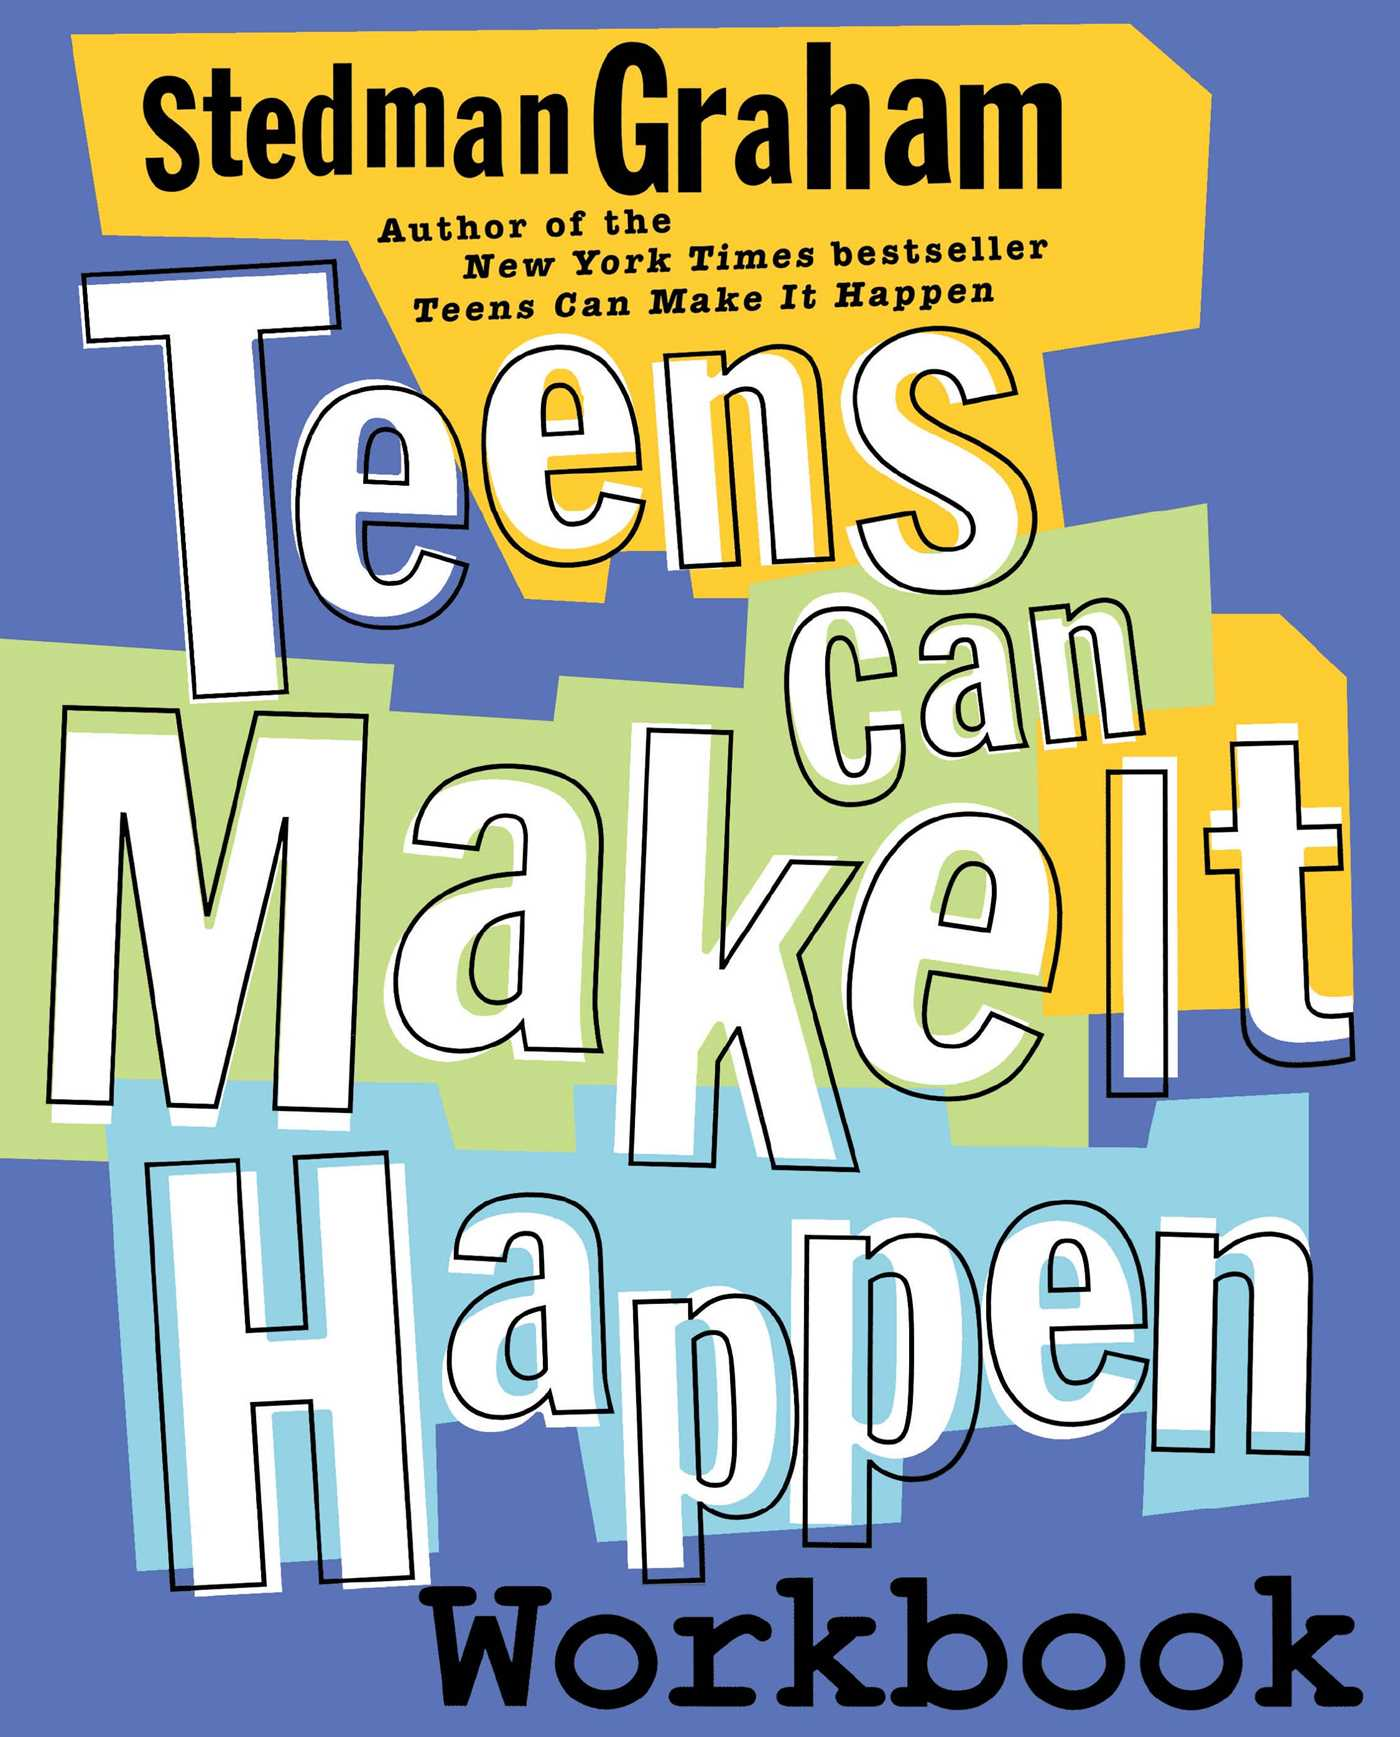 Teens can make it happen workbook 9780743225588 hr